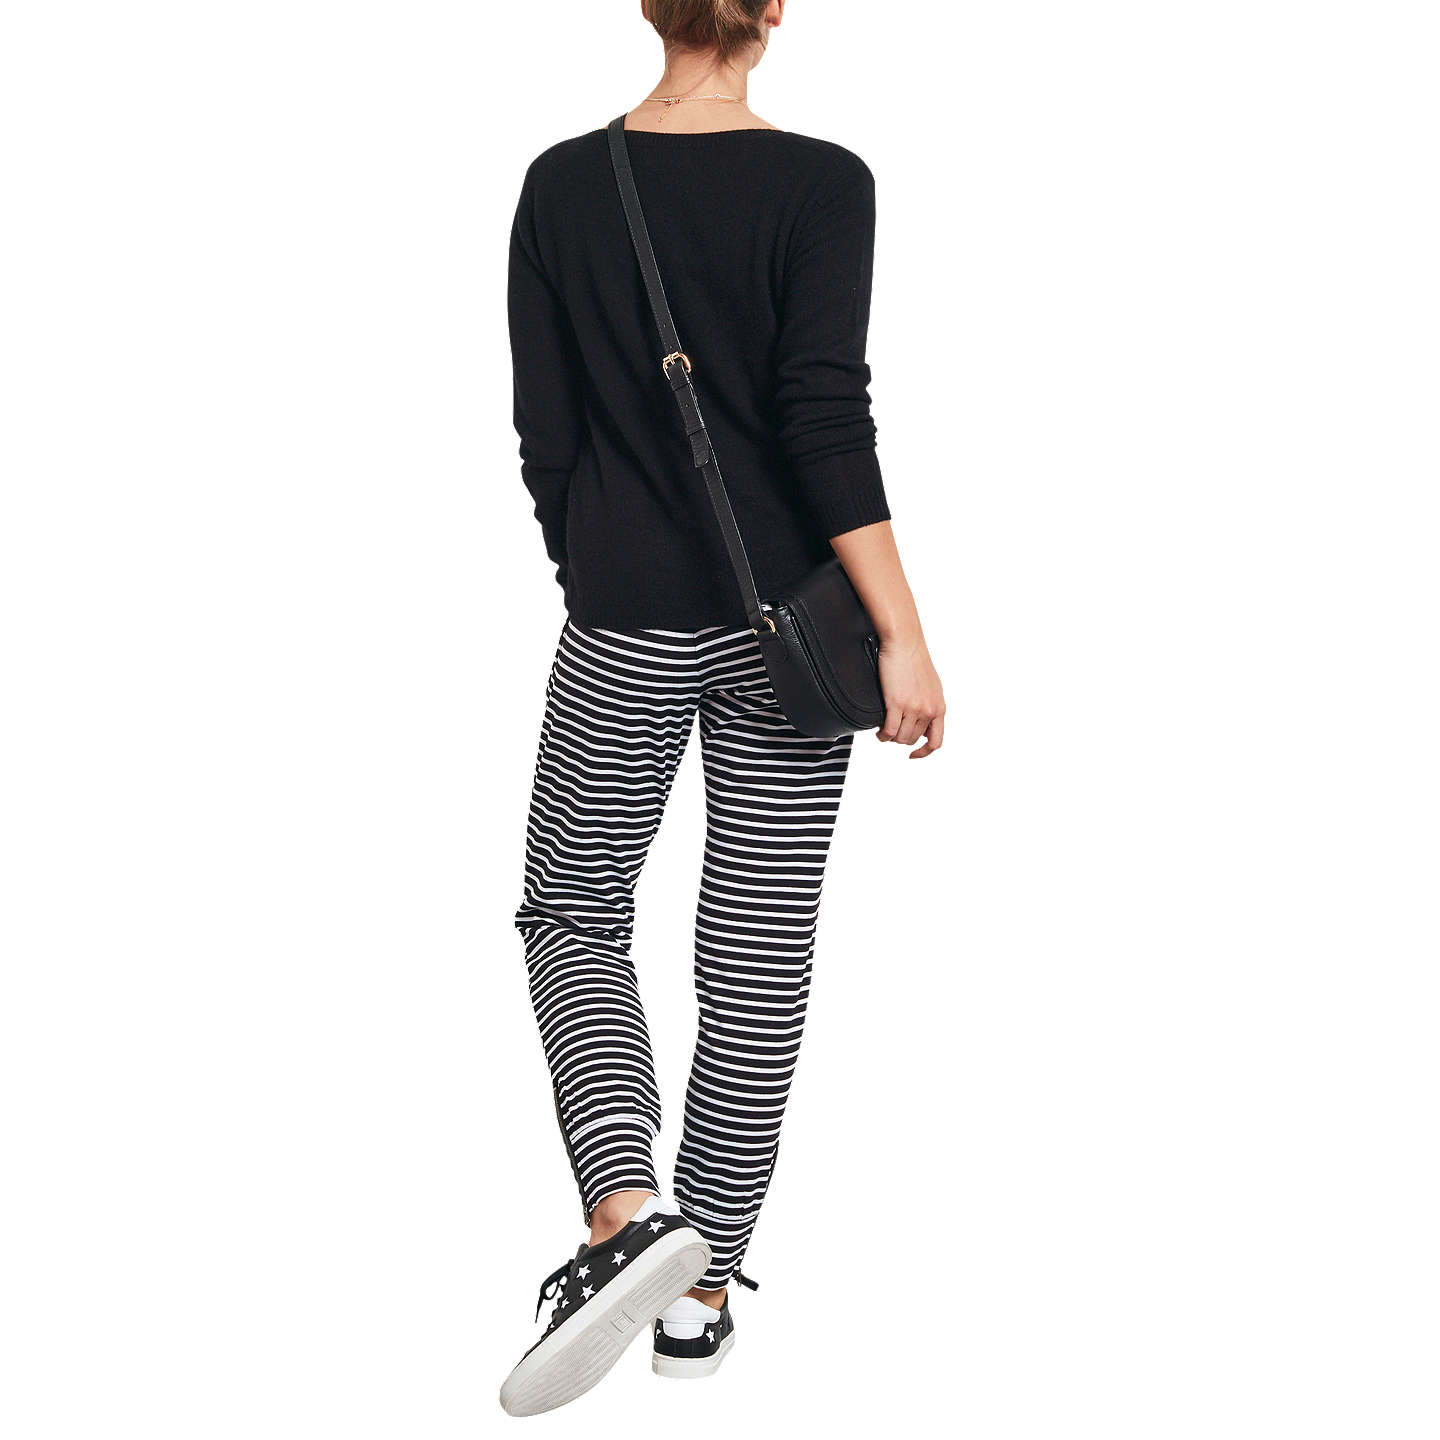 Buyhush Amie Stripe Joggers, White/Black, XS Online at johnlewis.com